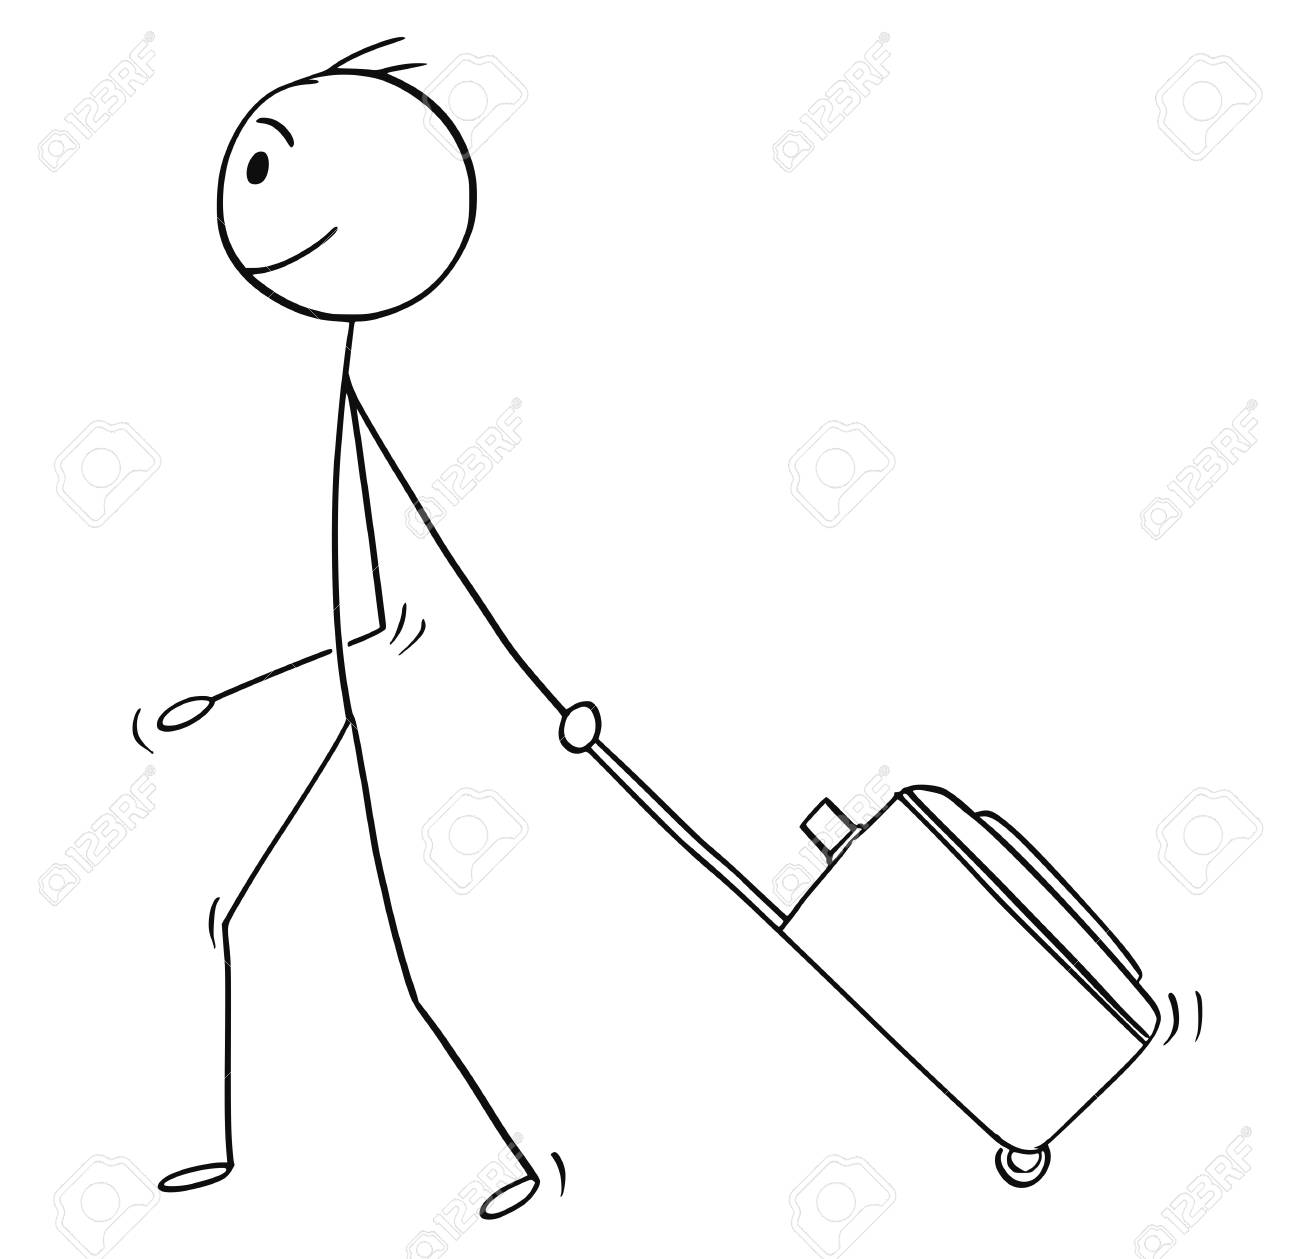 Cartoon stick man drawing conceptual illustration of man or male tourist with wheeled luggage or case going on holiday or vacation. - 102414809